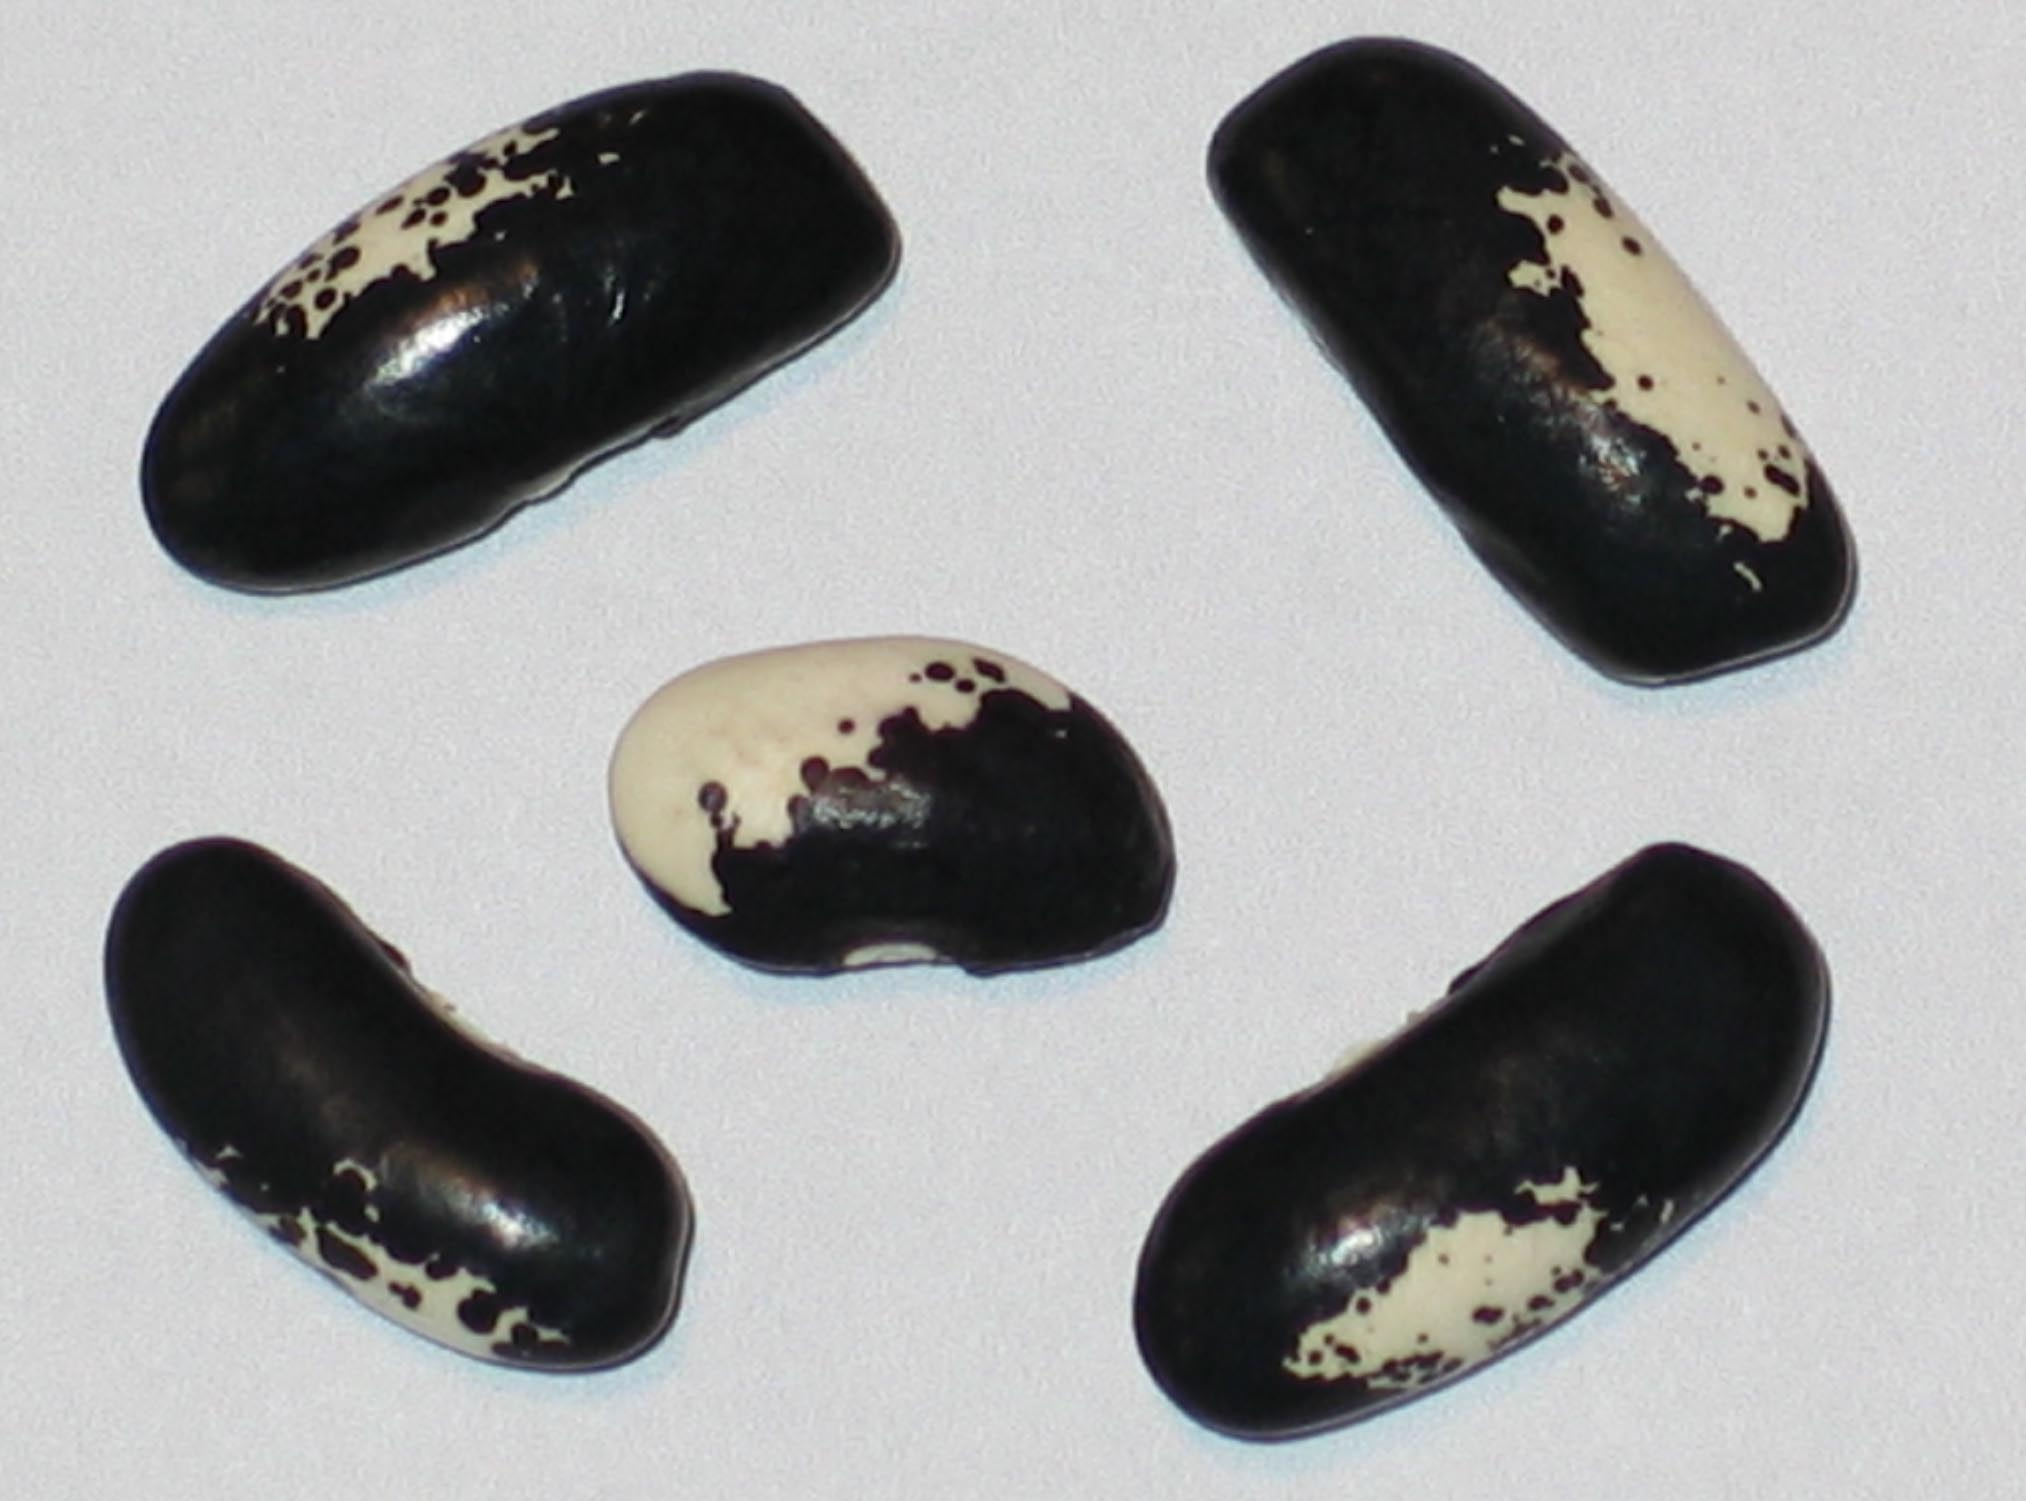 image of Black-Eyed Gem beans